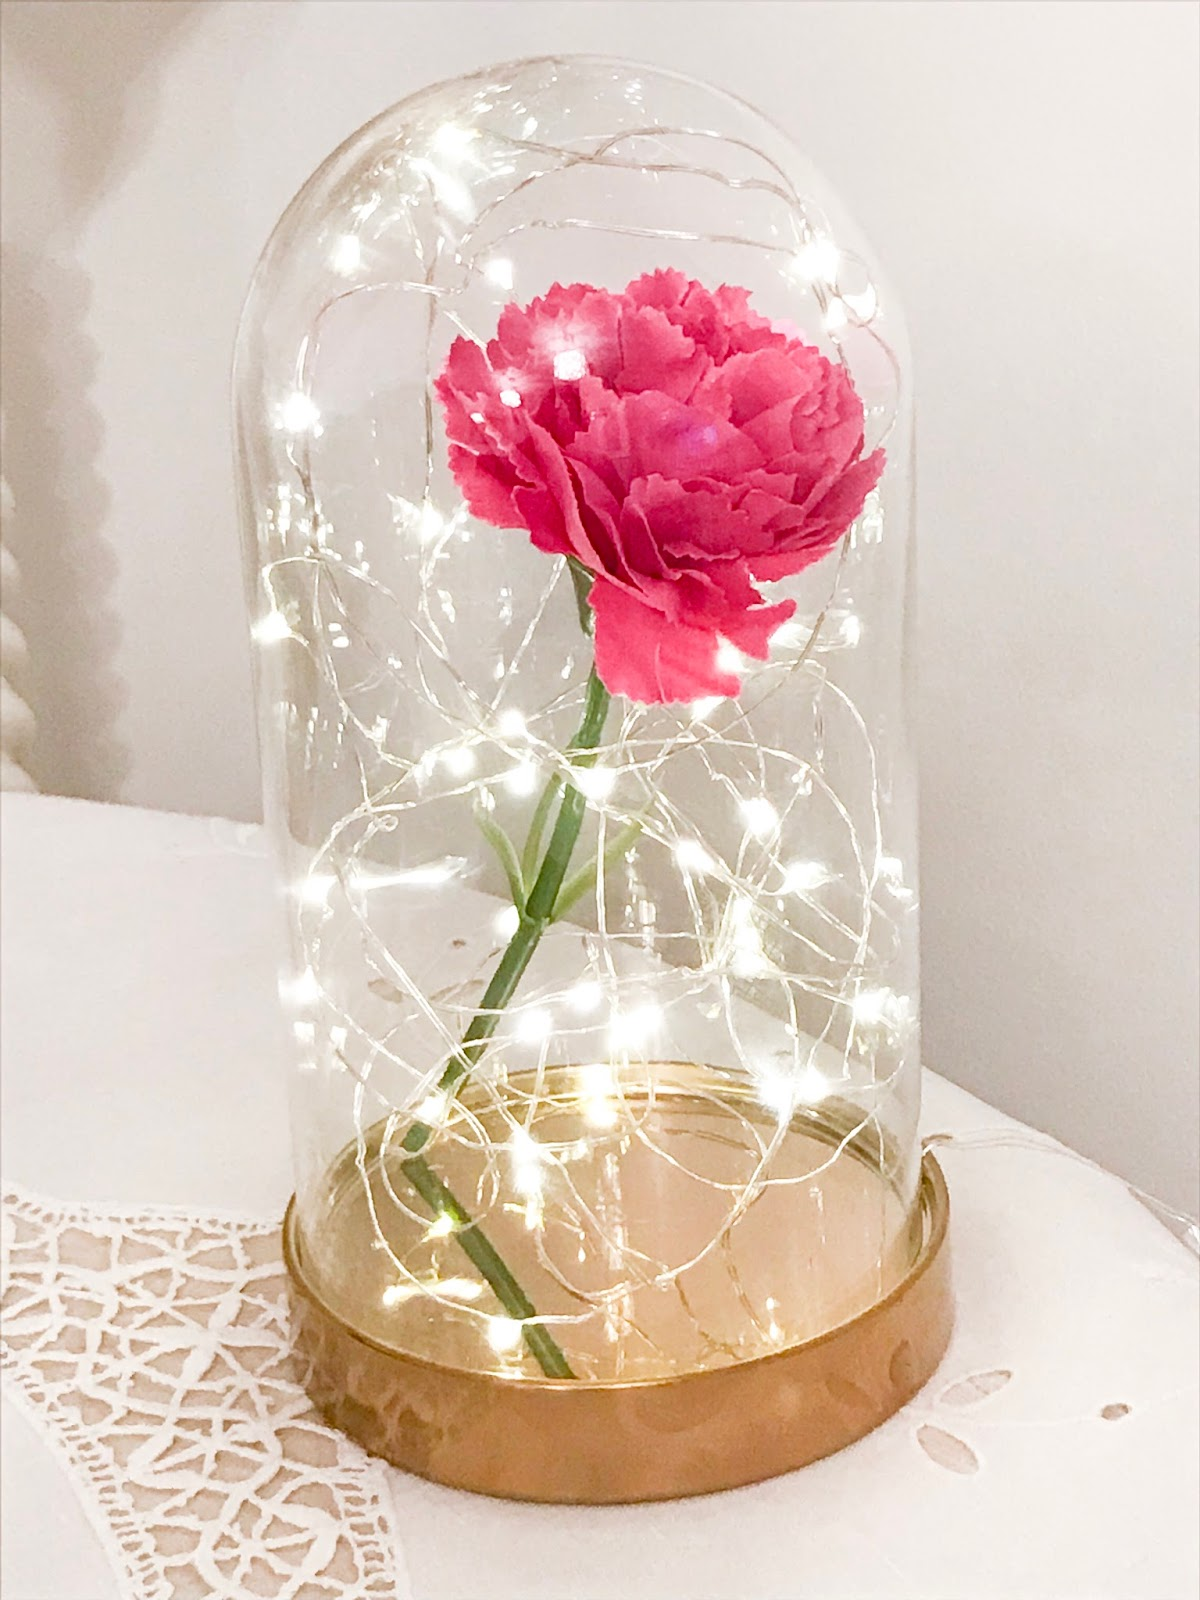 How to make diy beauty the beast inspired bell jar for under 10 how to make diy beauty the beast bell jar for under 10 izmirmasajfo Choice Image